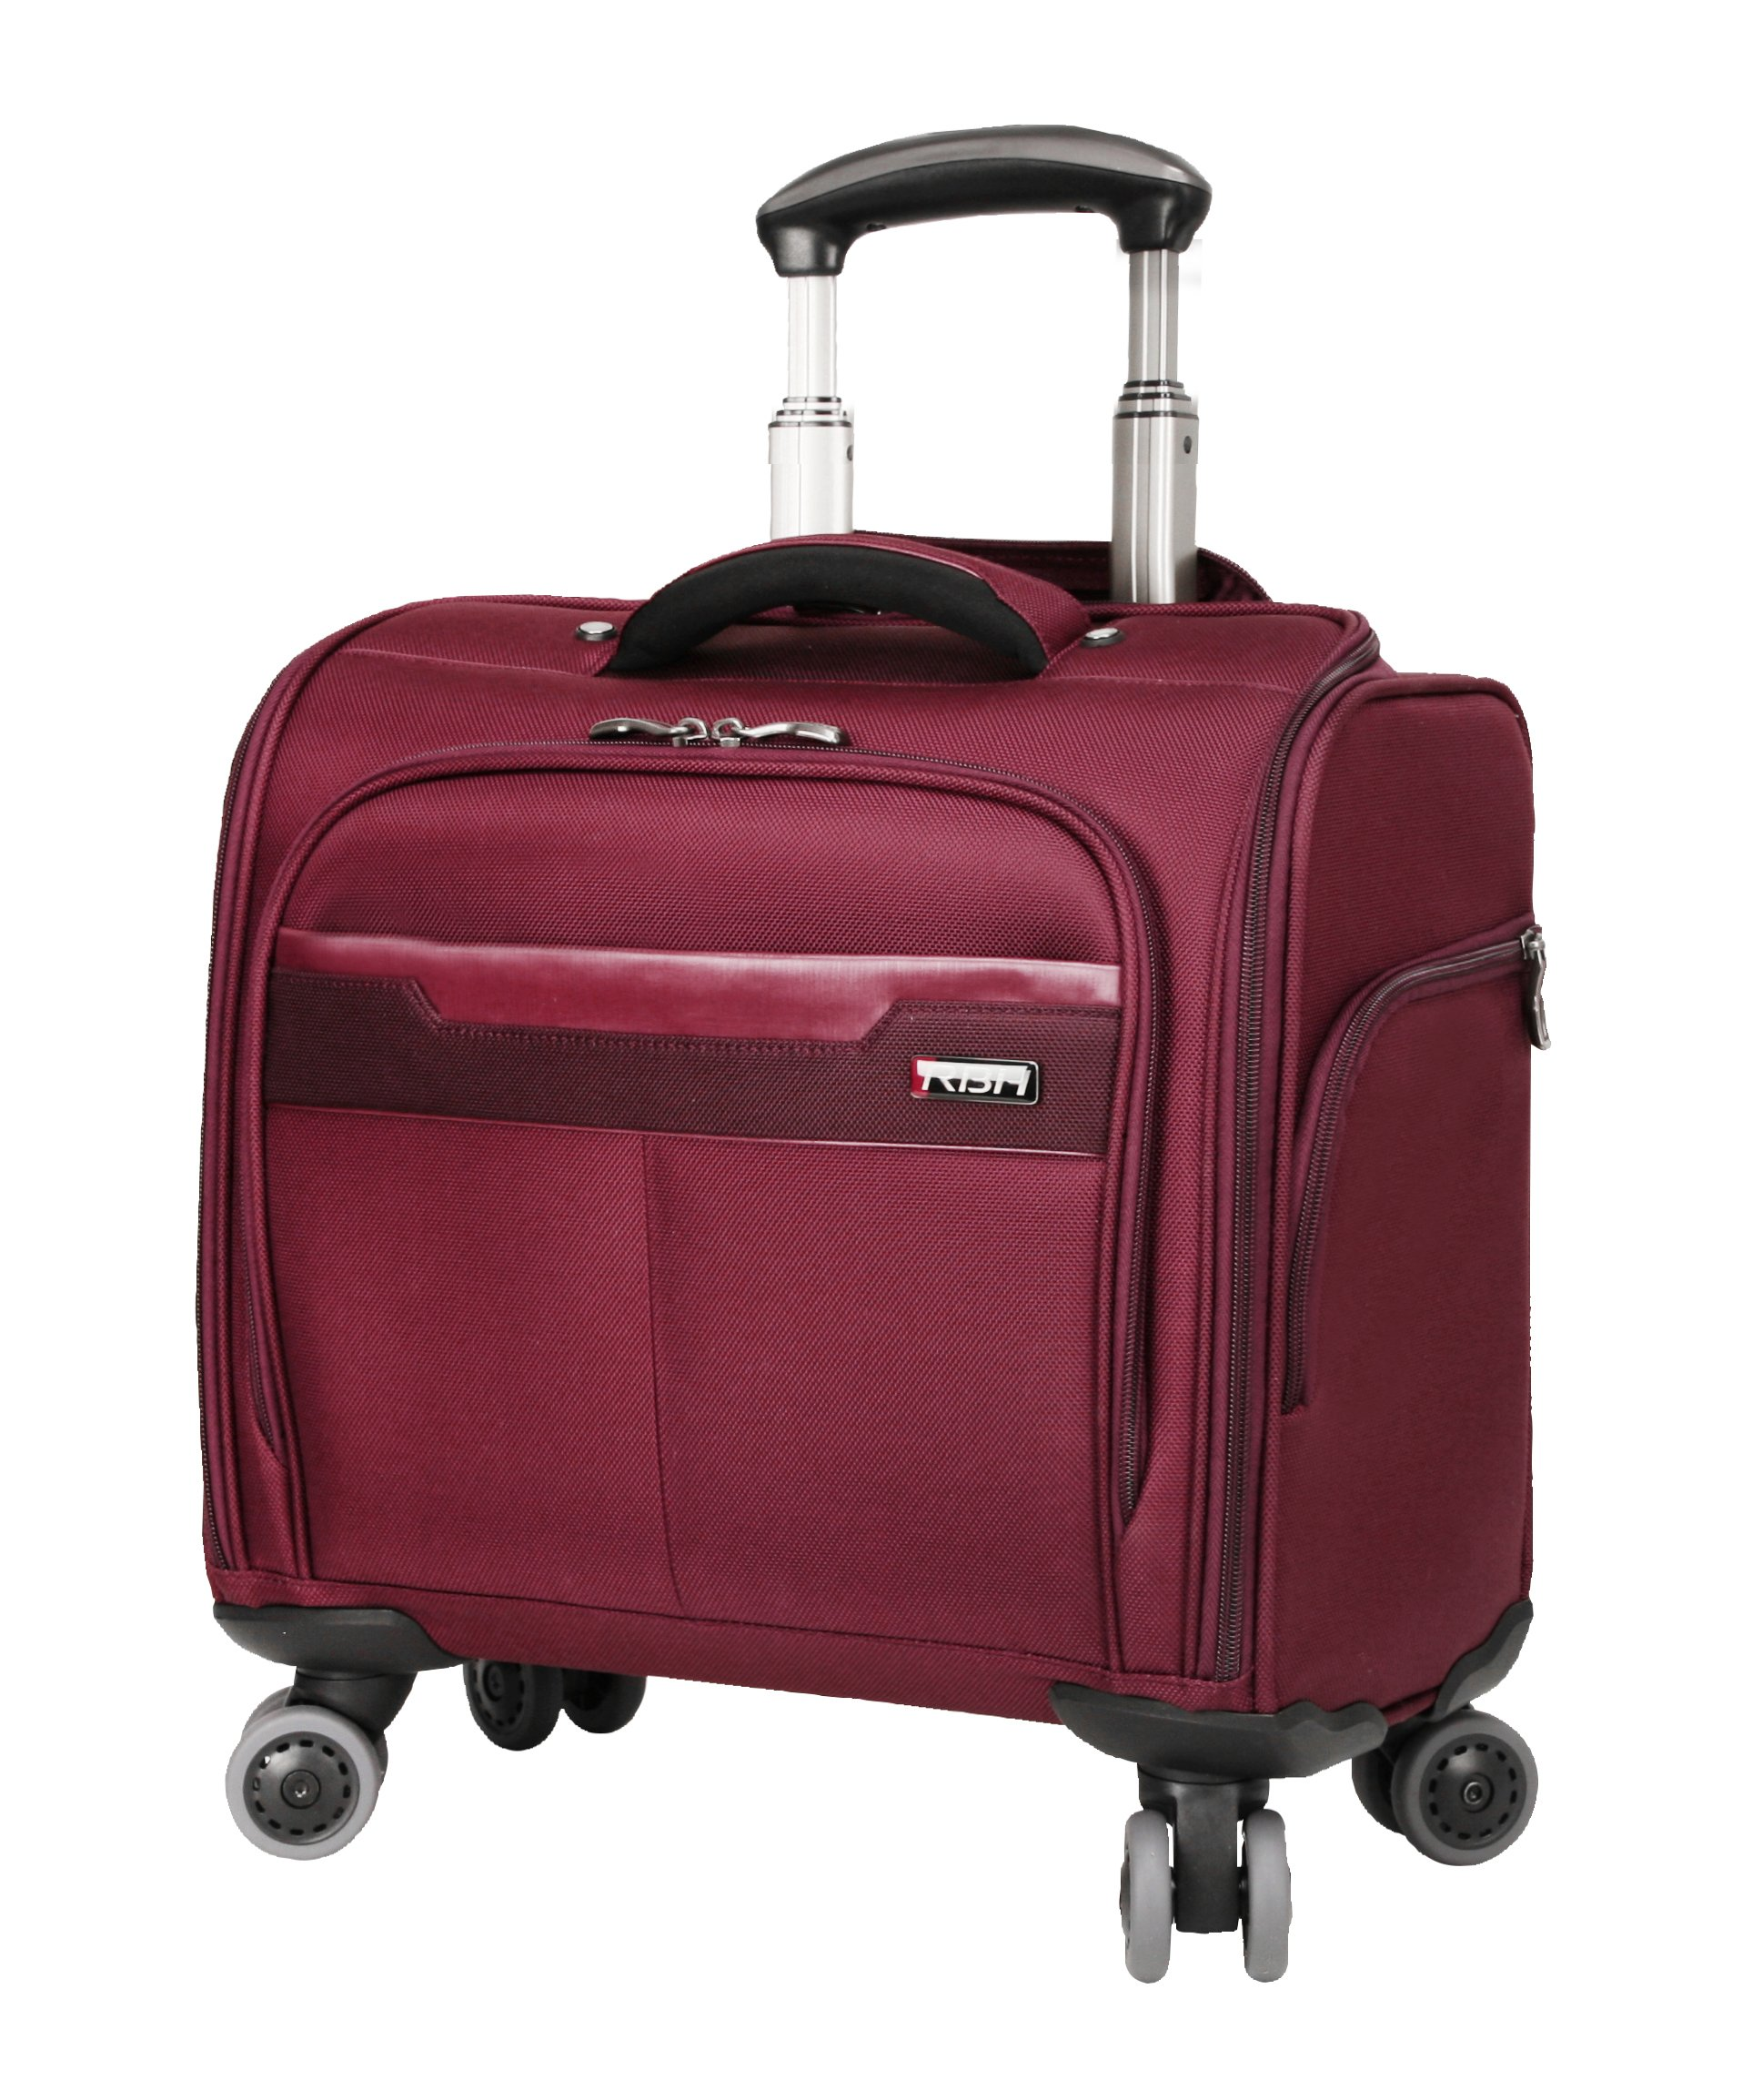 Ricardo Beverly Hills Bel Aire 16-Inch Rolling Tote, Wine, One Size